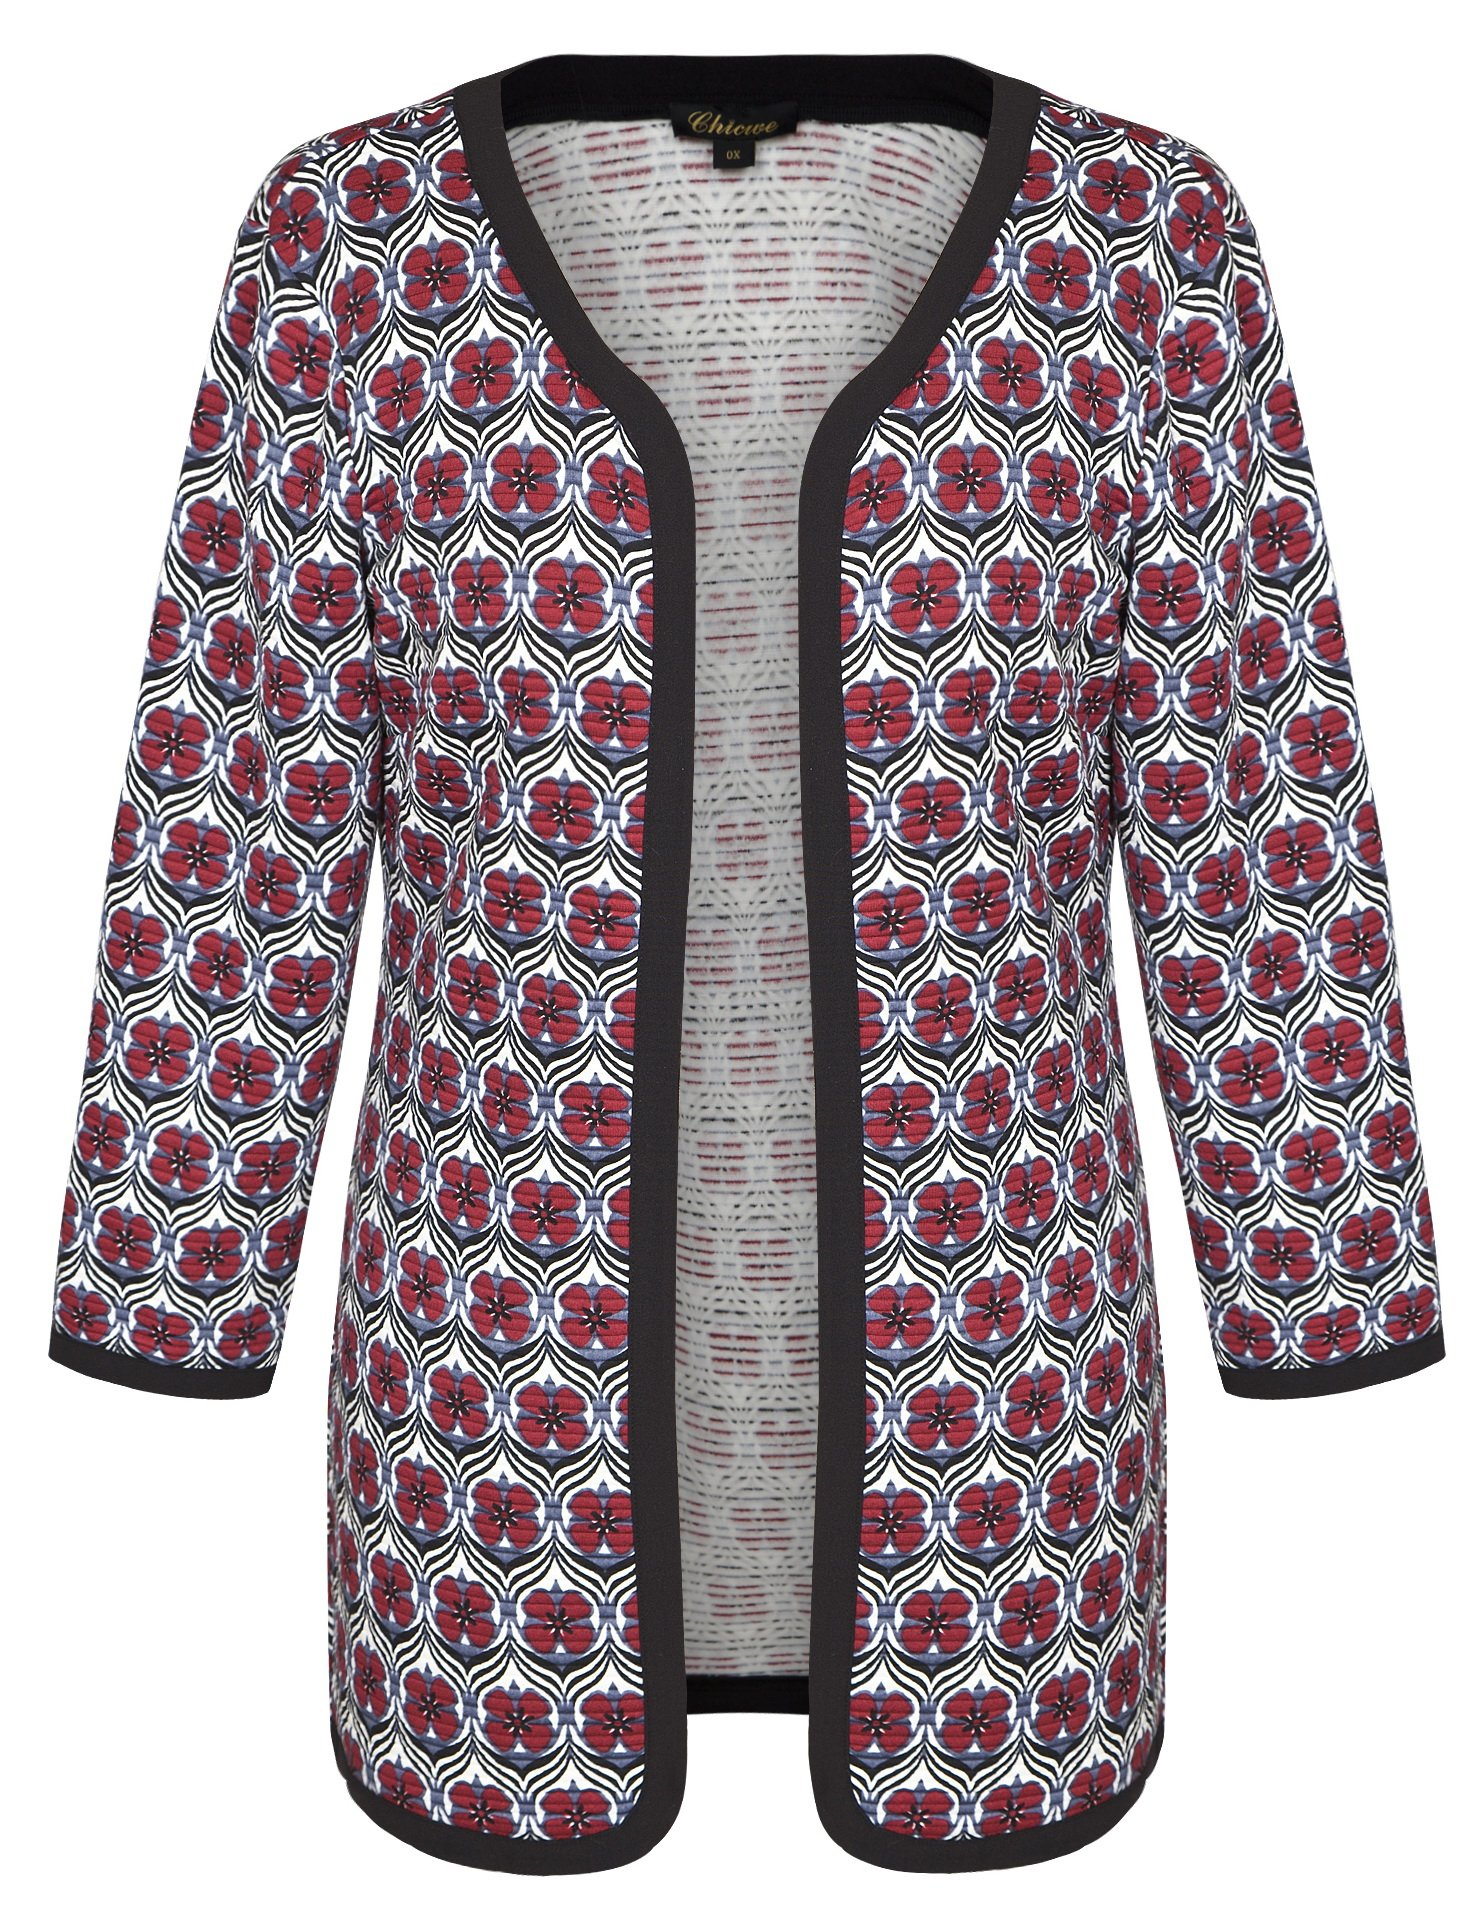 Chicwe Women's Floral Quilted Plus Size Jacket Cardigan Cherry Red 4X